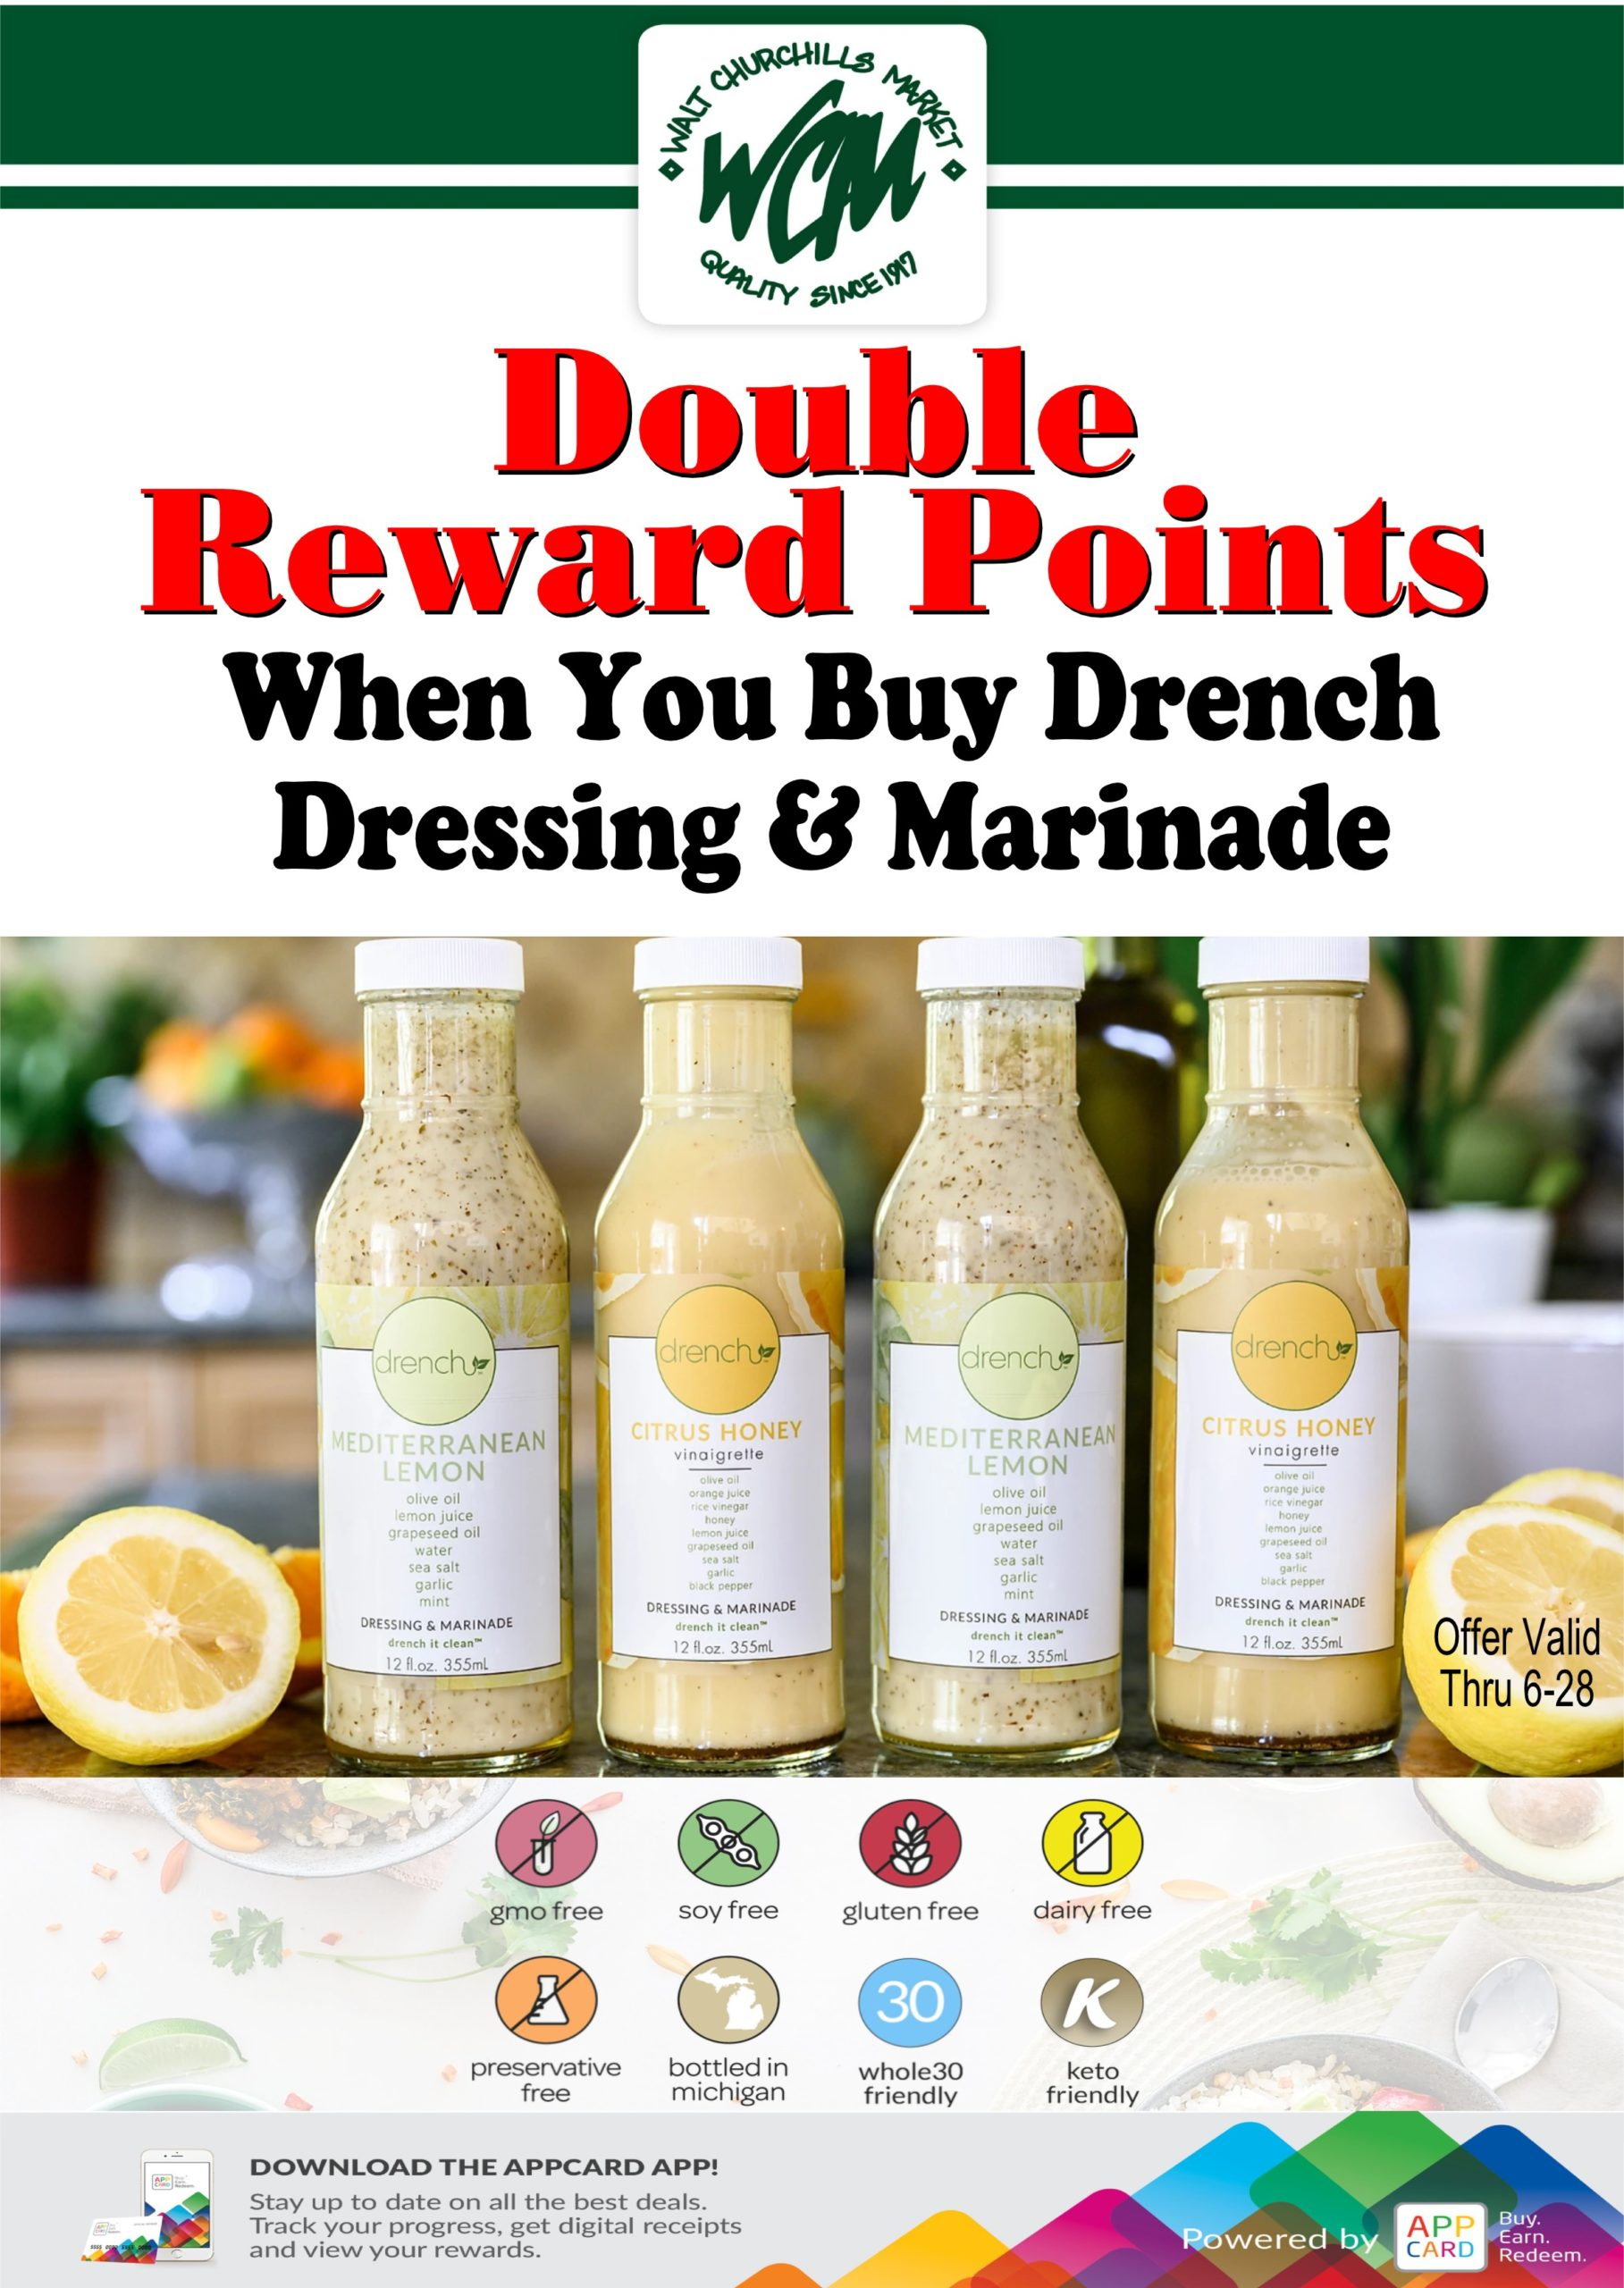 Double reward Points when you buy drench dressing & marinade